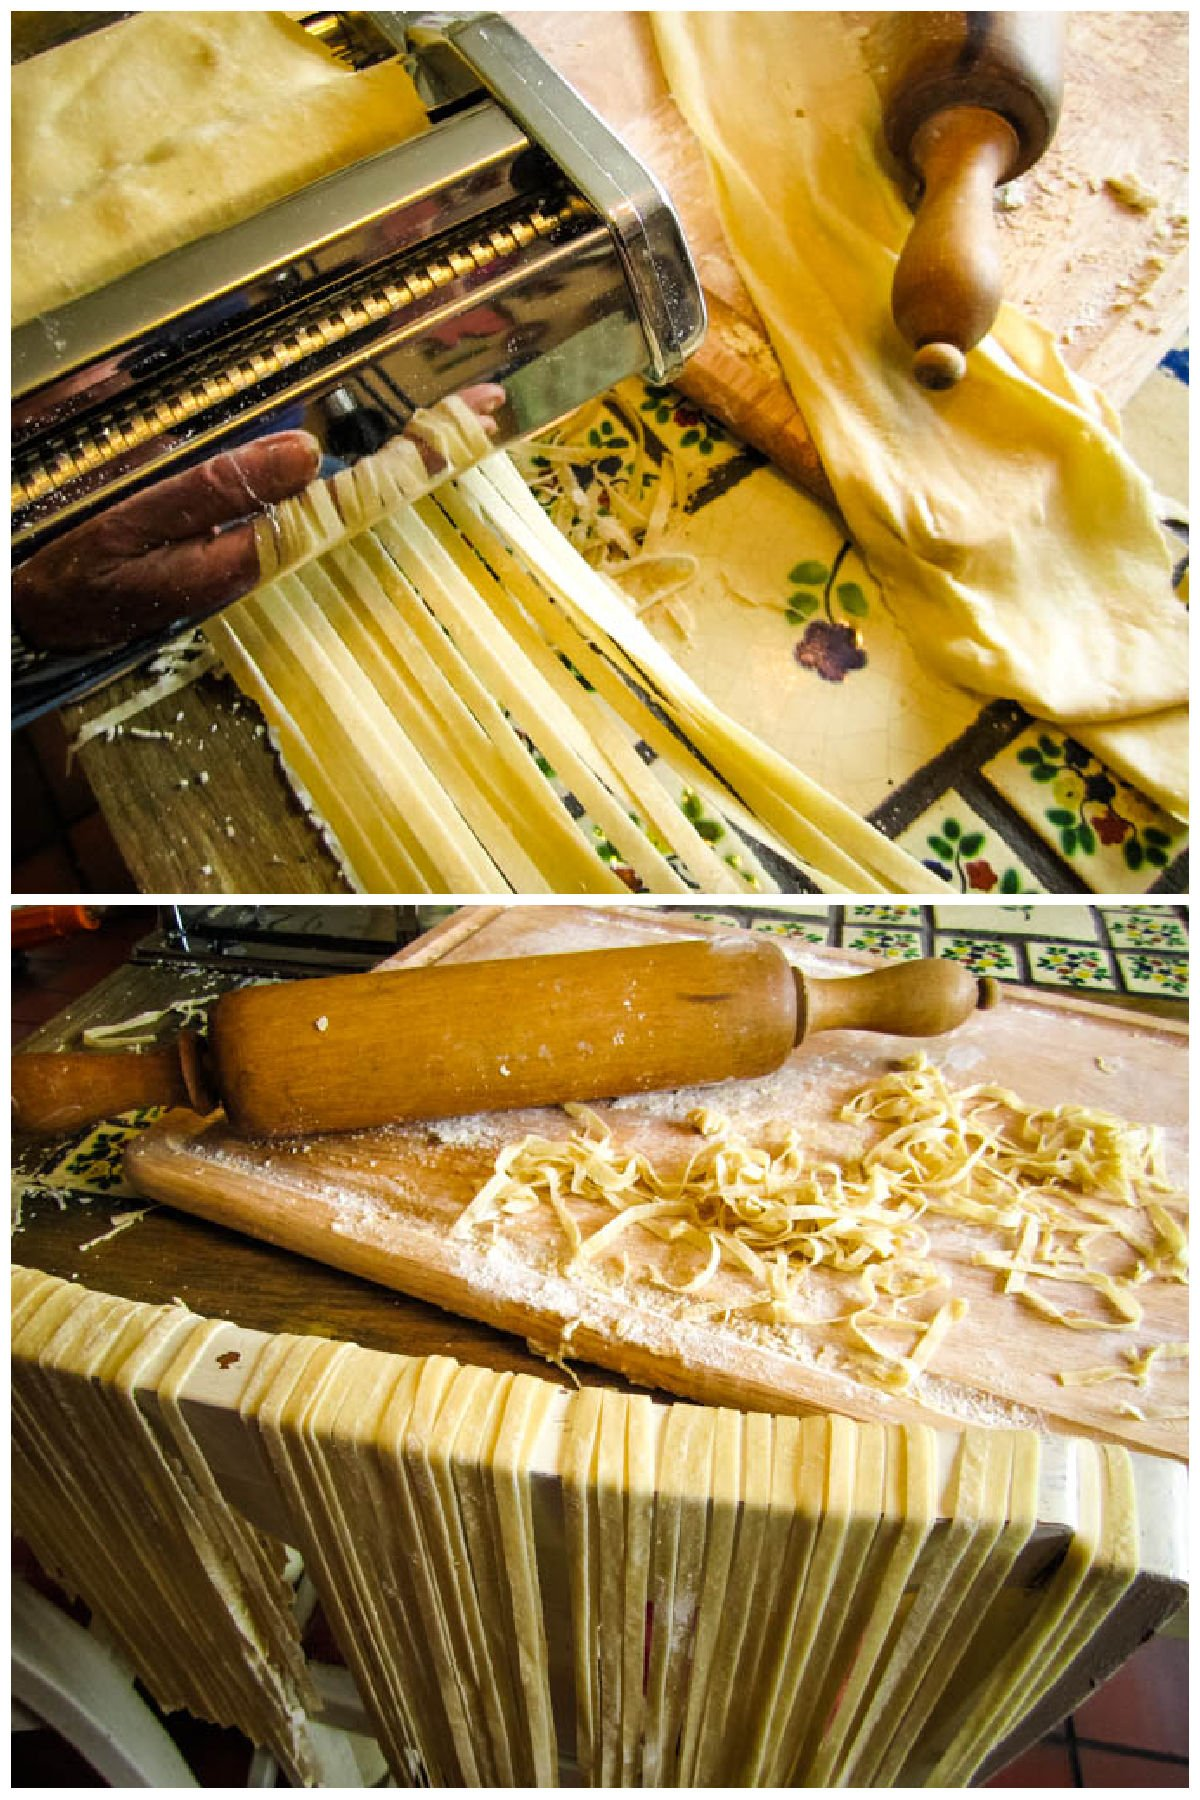 cutting the pasta shapes